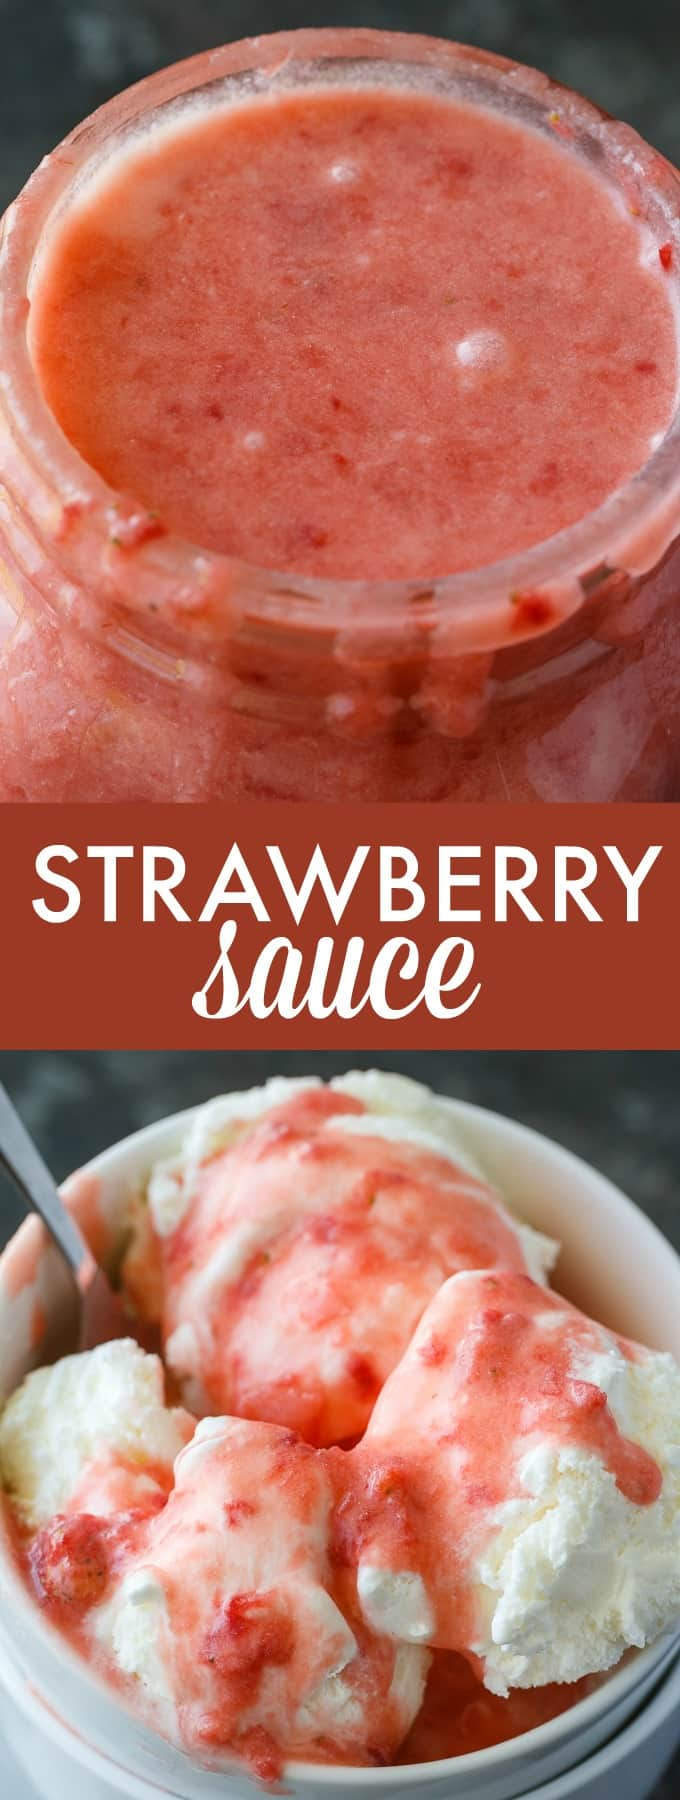 Strawberry Sauce - A sinfully scrumptious summer ice cream sauce made with fresh strawberries! Only 3 ingredients and ready in 5 minutes!